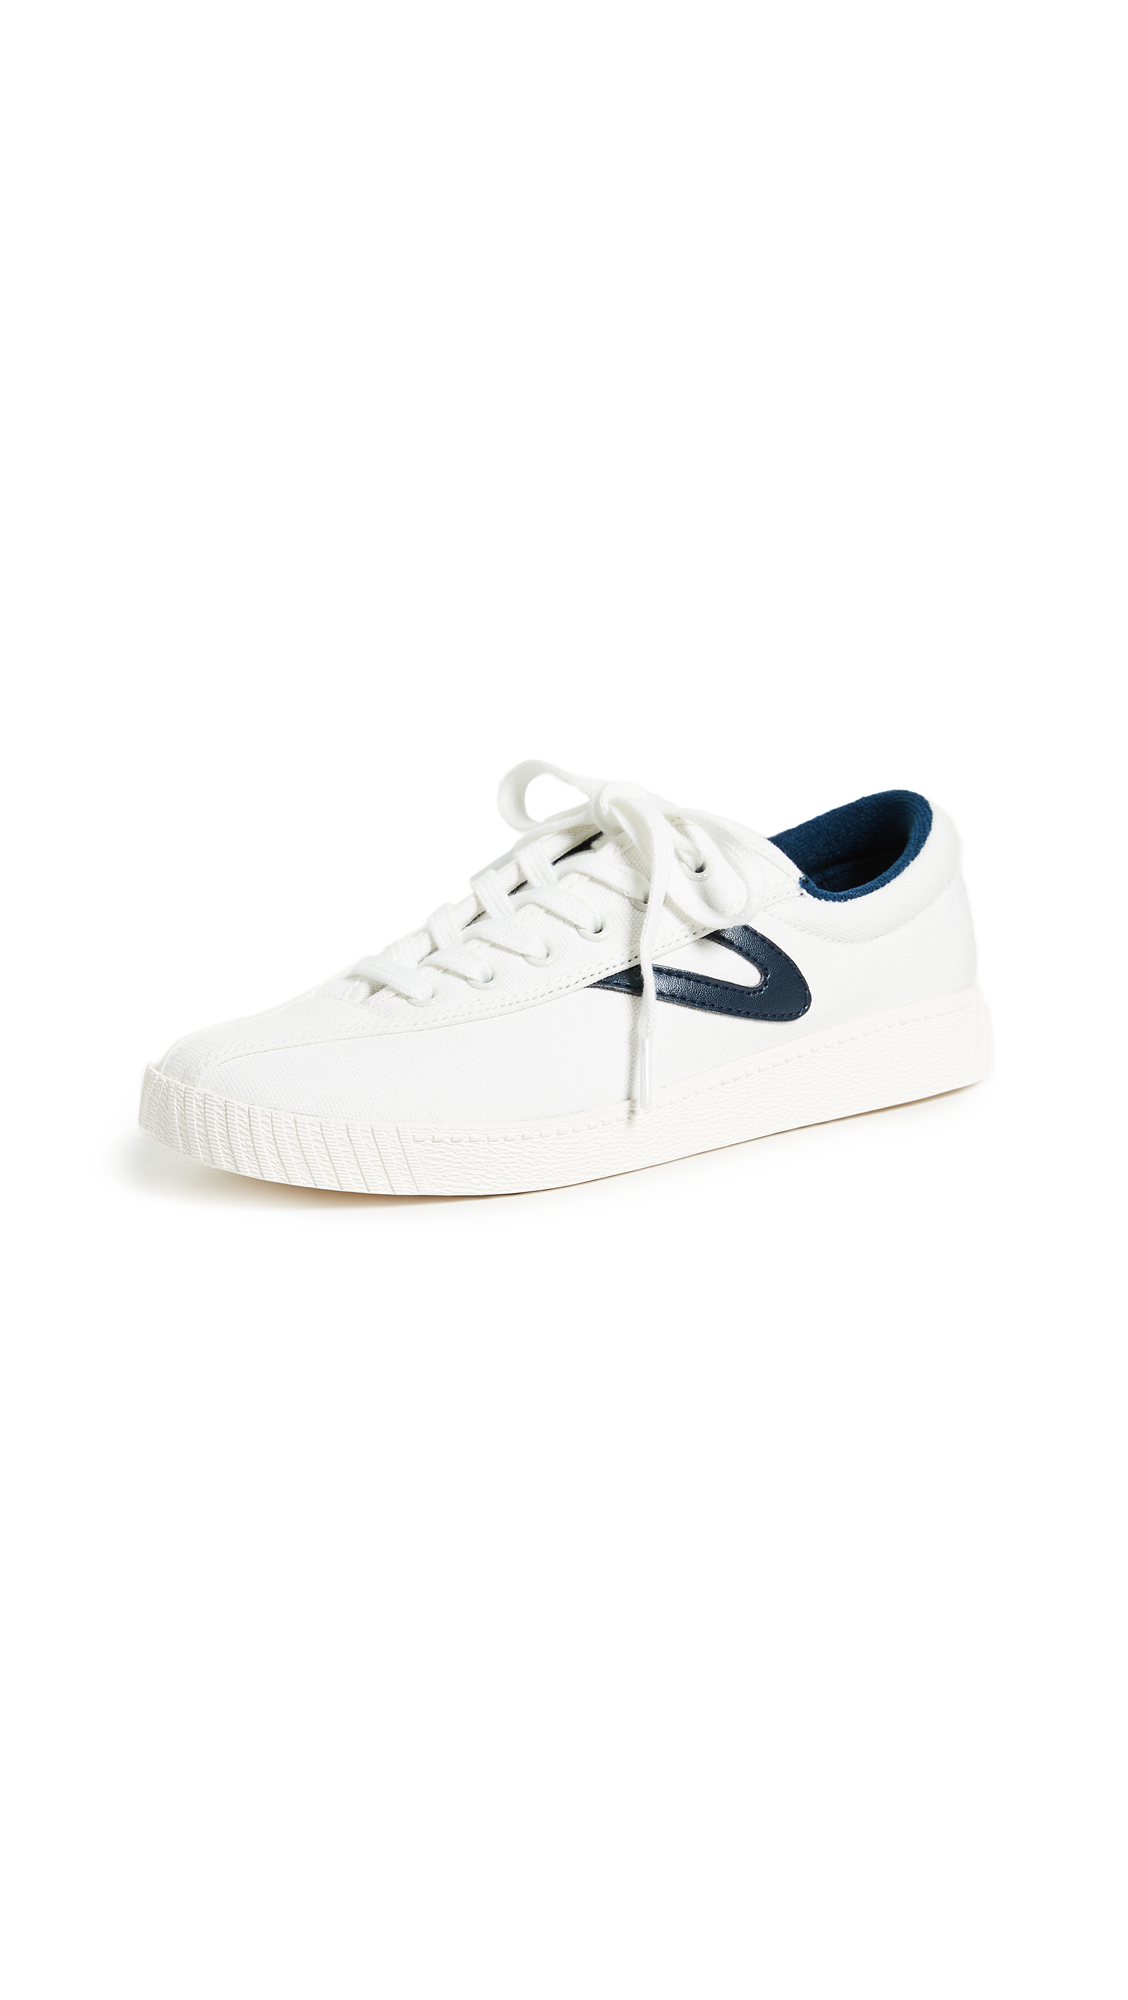 Tretorn Nylite Plus Lace Up Sneakers - White/Night